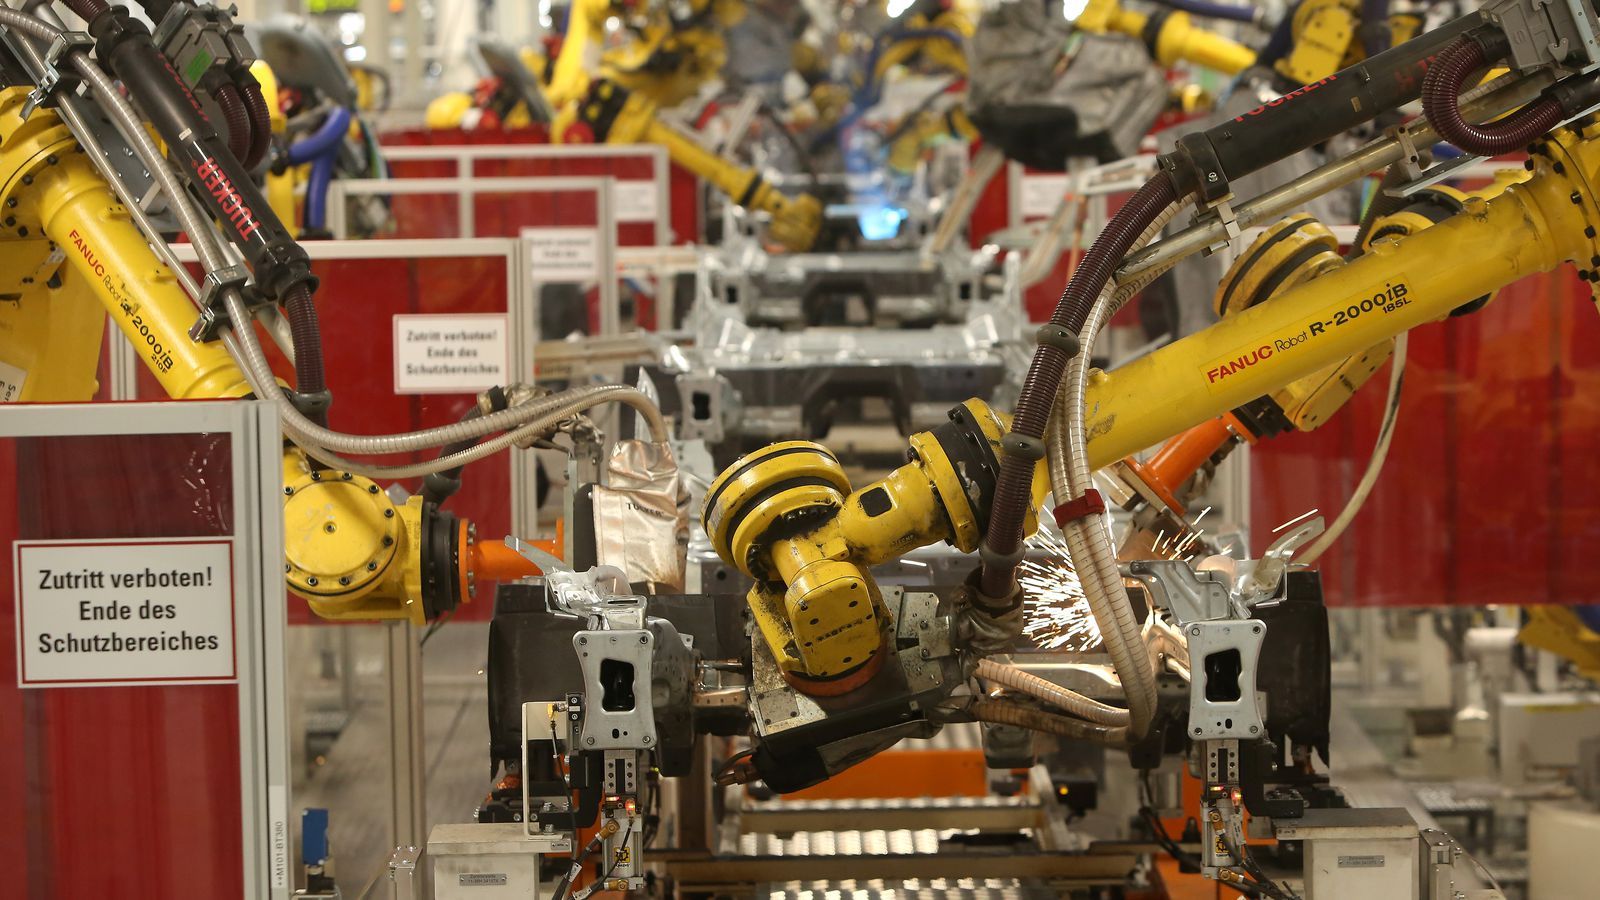 The industrial robotics market will nearly triple in less than 10 years